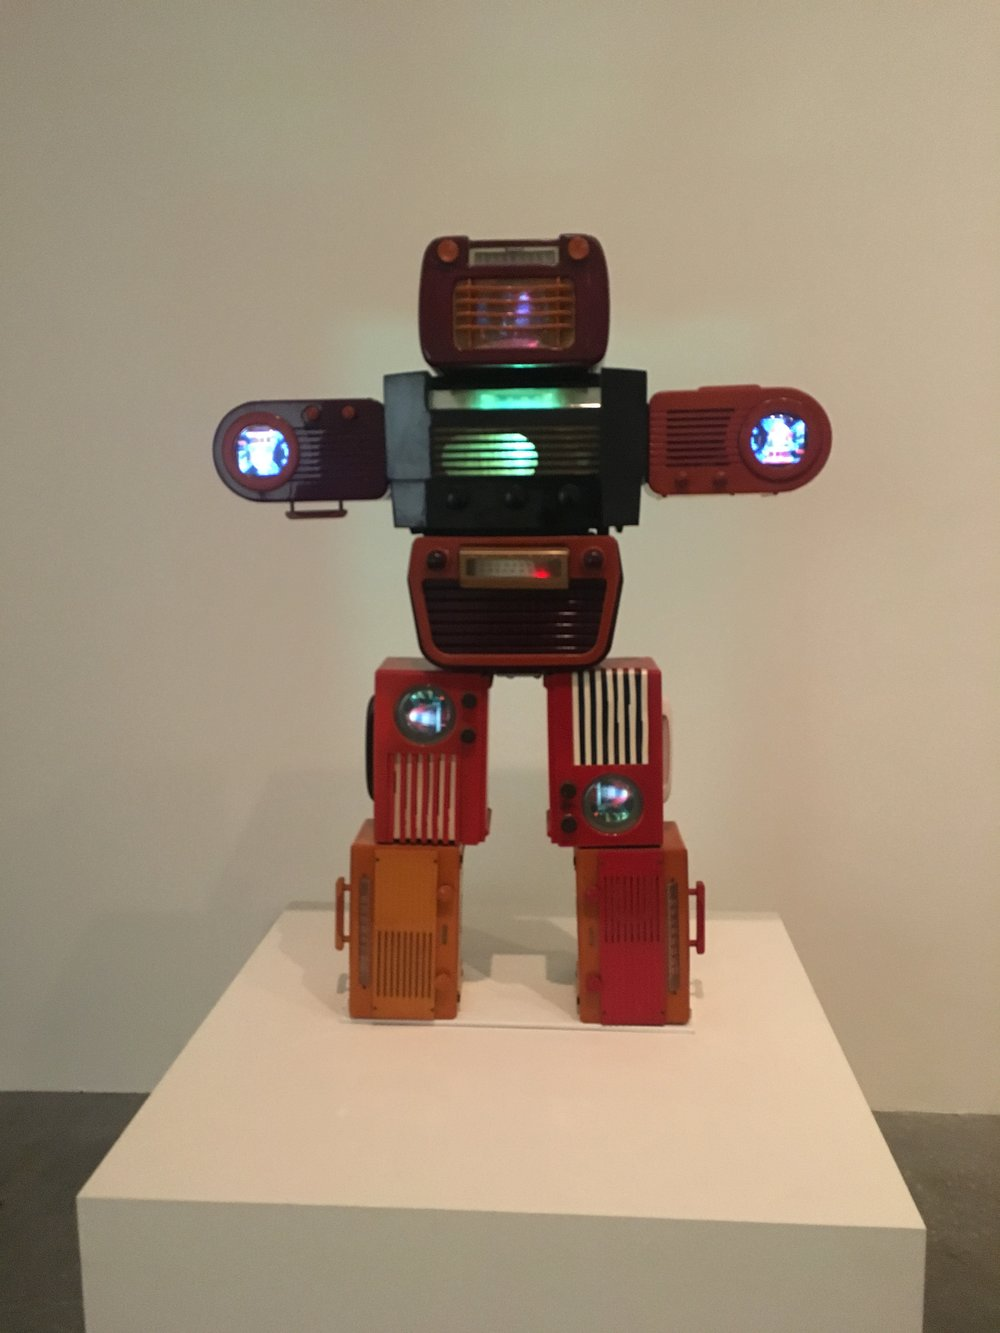 Robot from Tate Modern